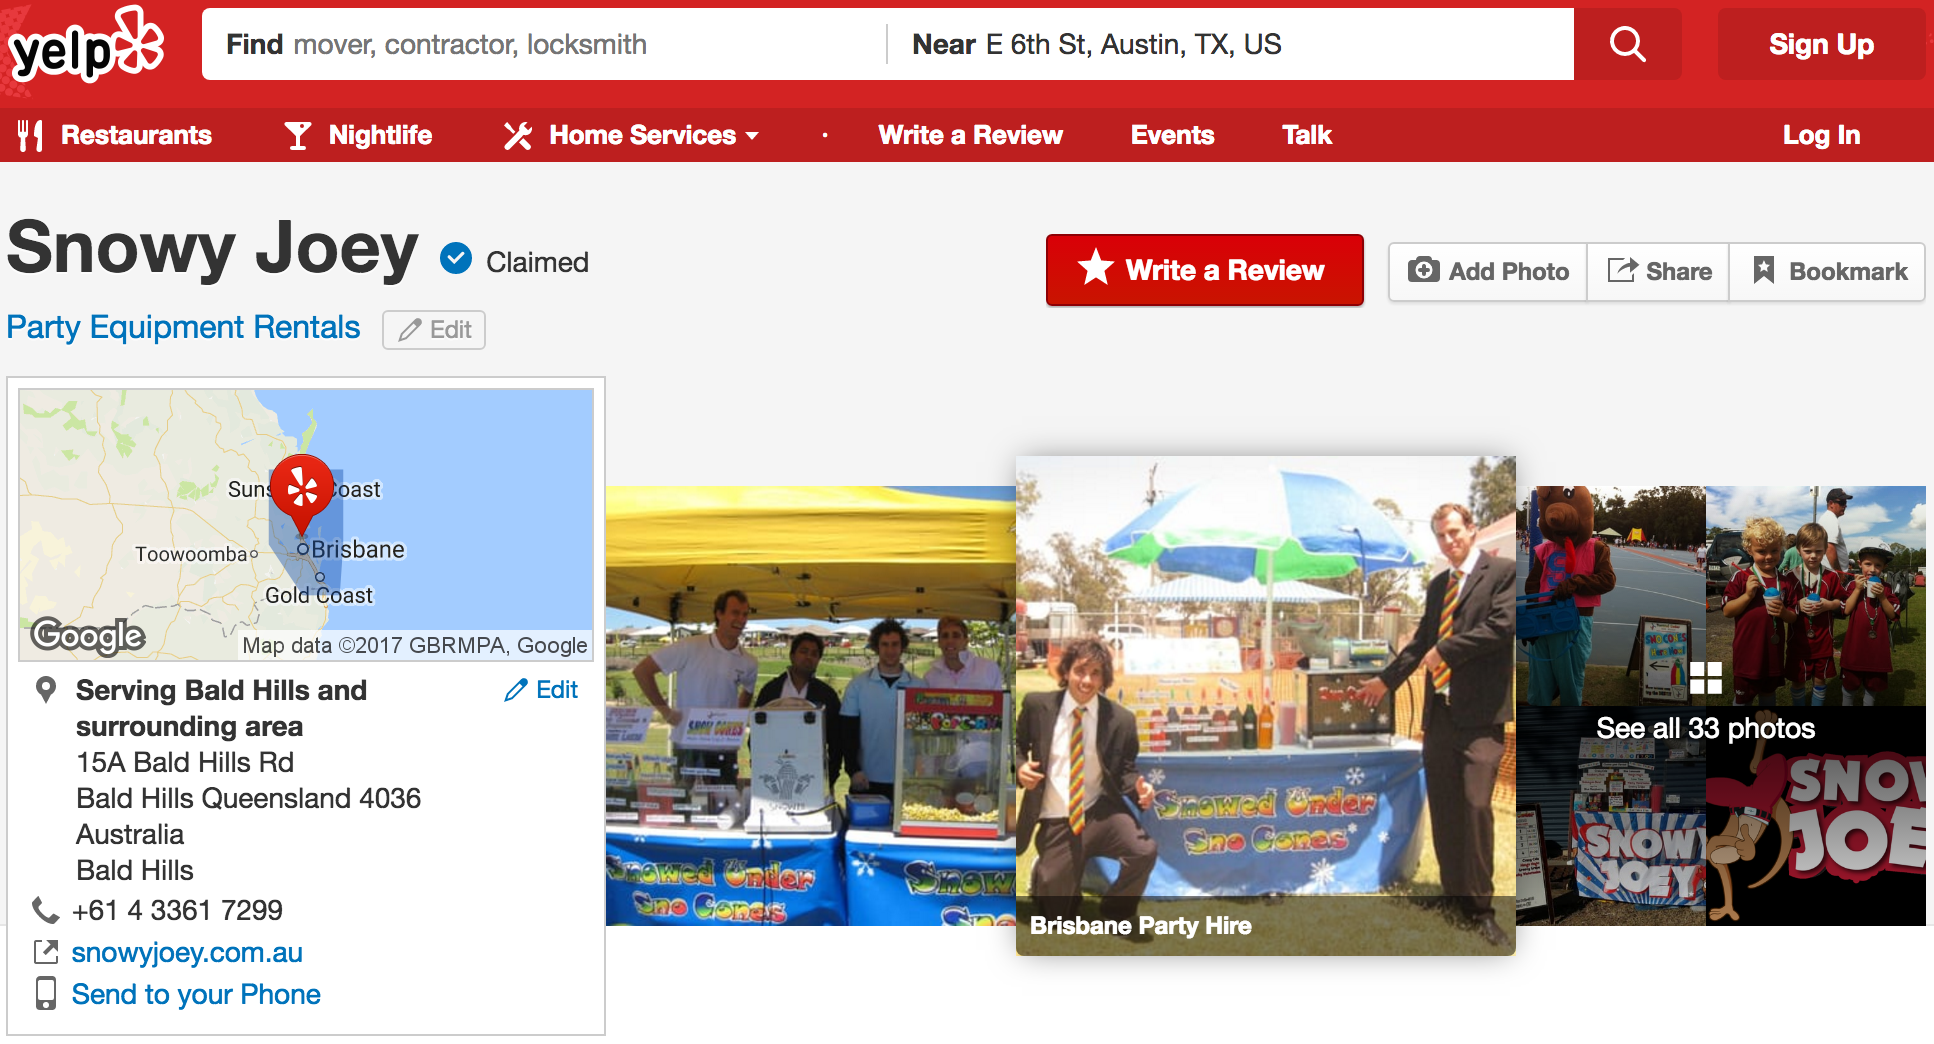 Screenshot showing the Yelp page for Snowy Joey